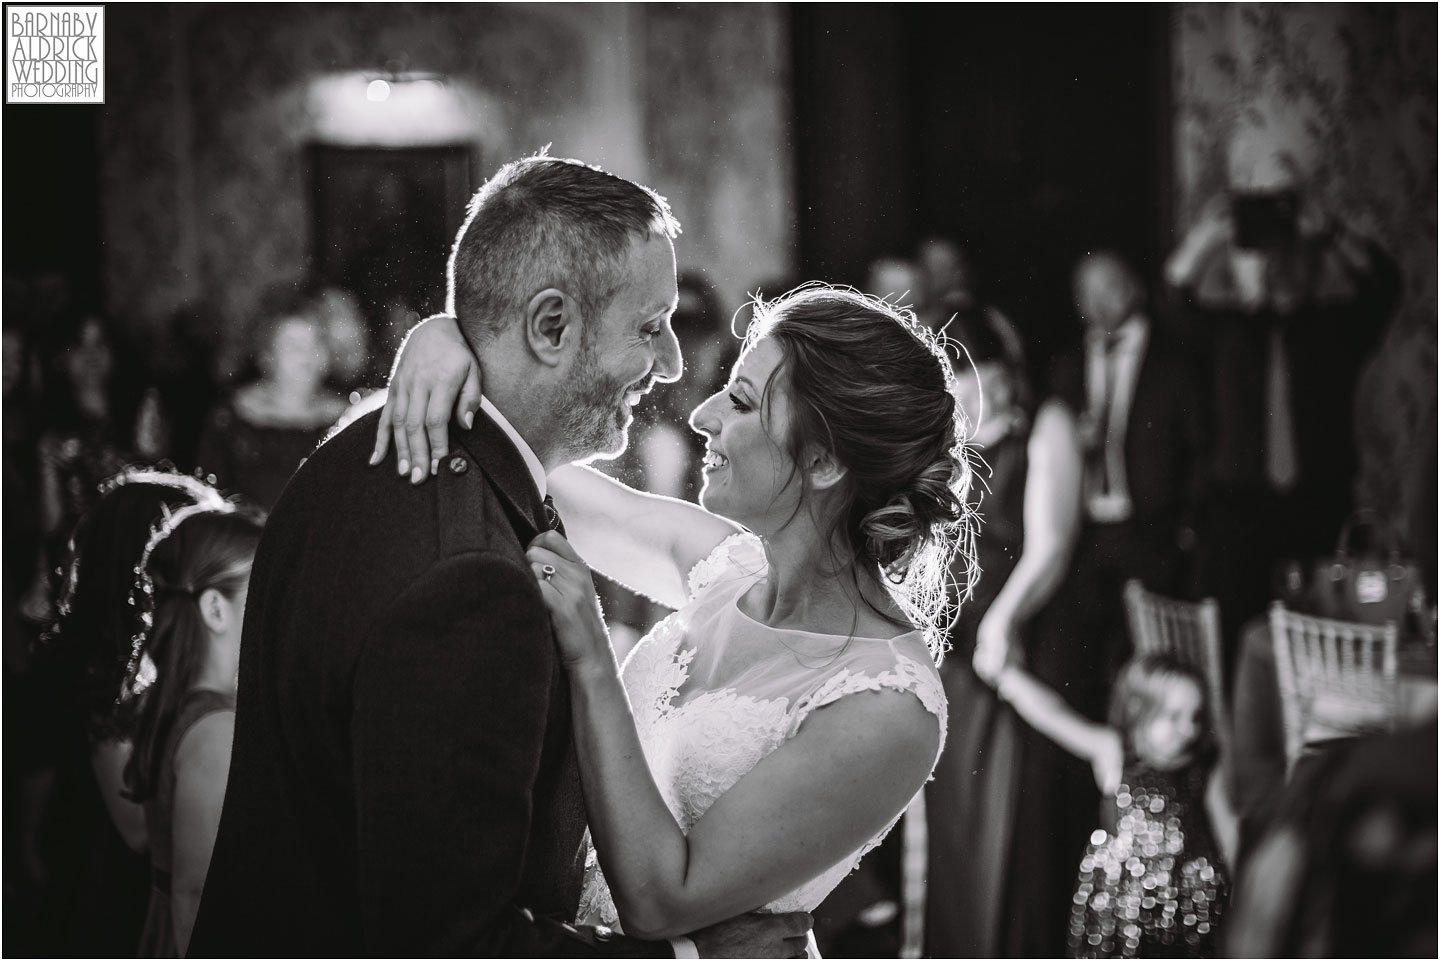 First dance at a wedding at Rowton Caste, Shropshire Wedding Photographer, Shrewsbury wedding venue, Amazing UK Castle Wedding